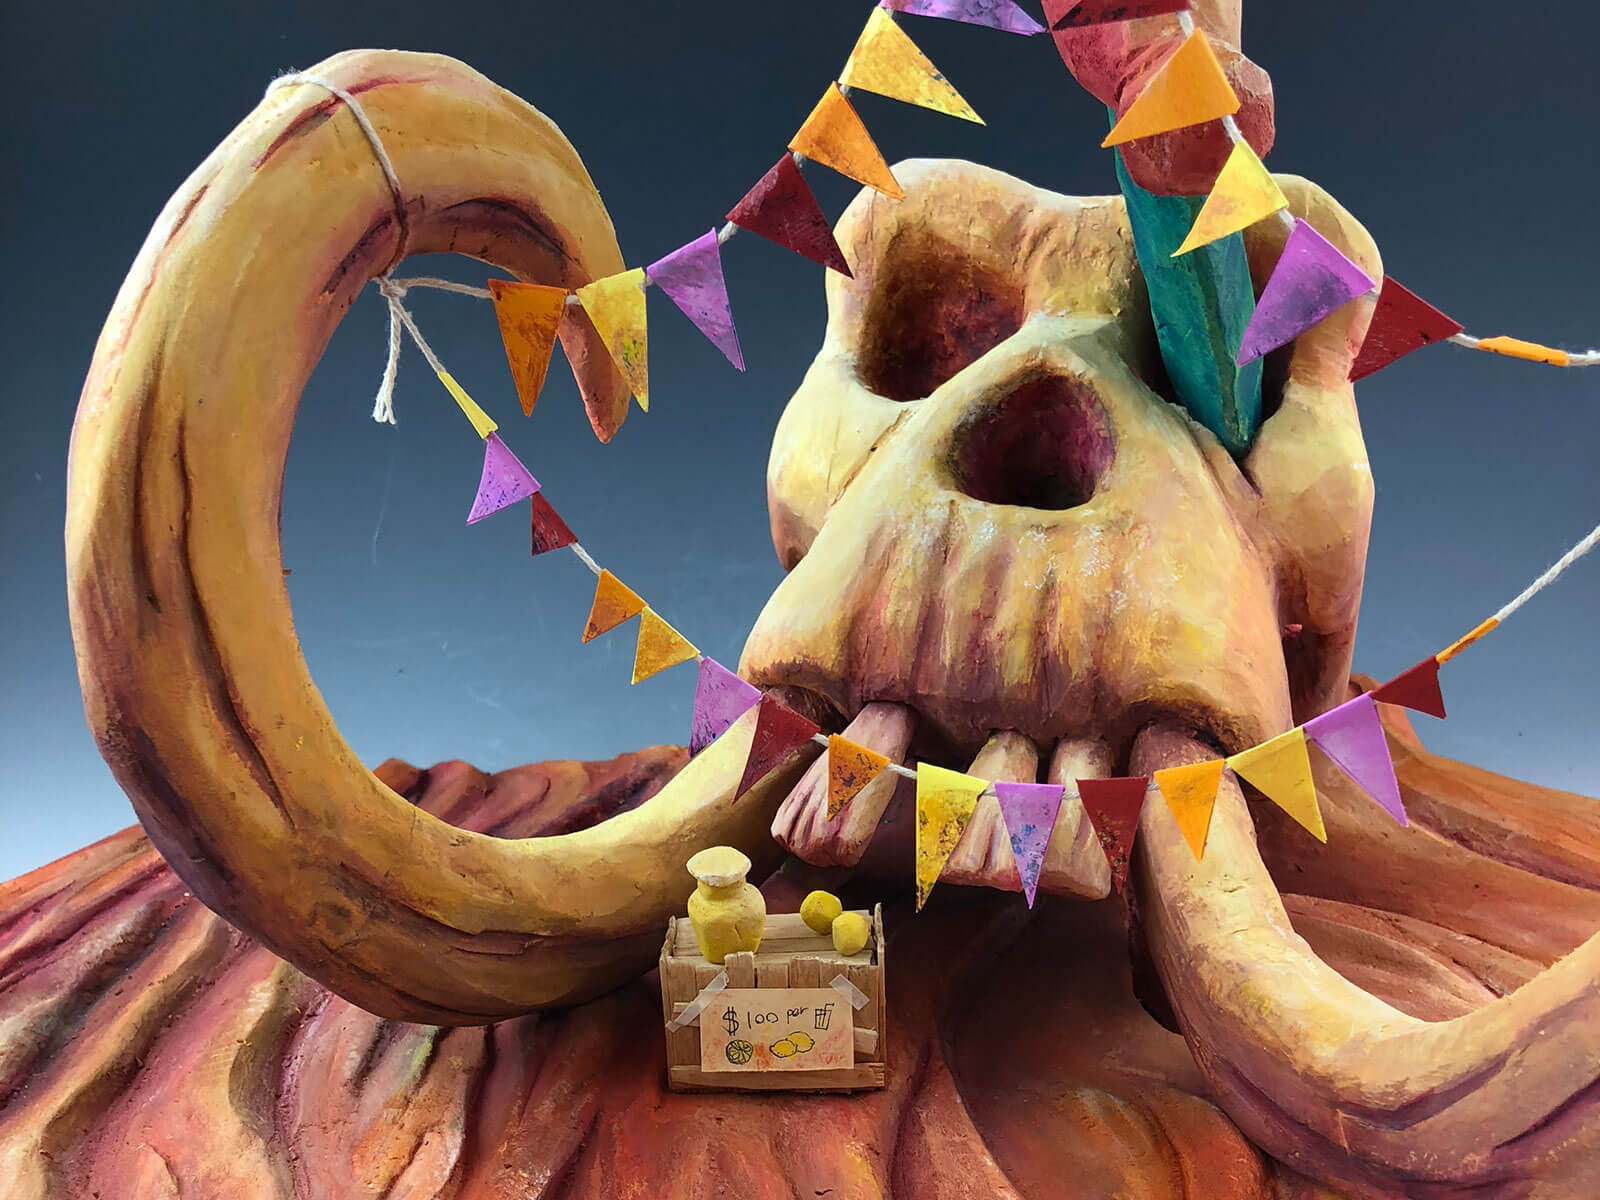 Mammoth skull draped with party flags